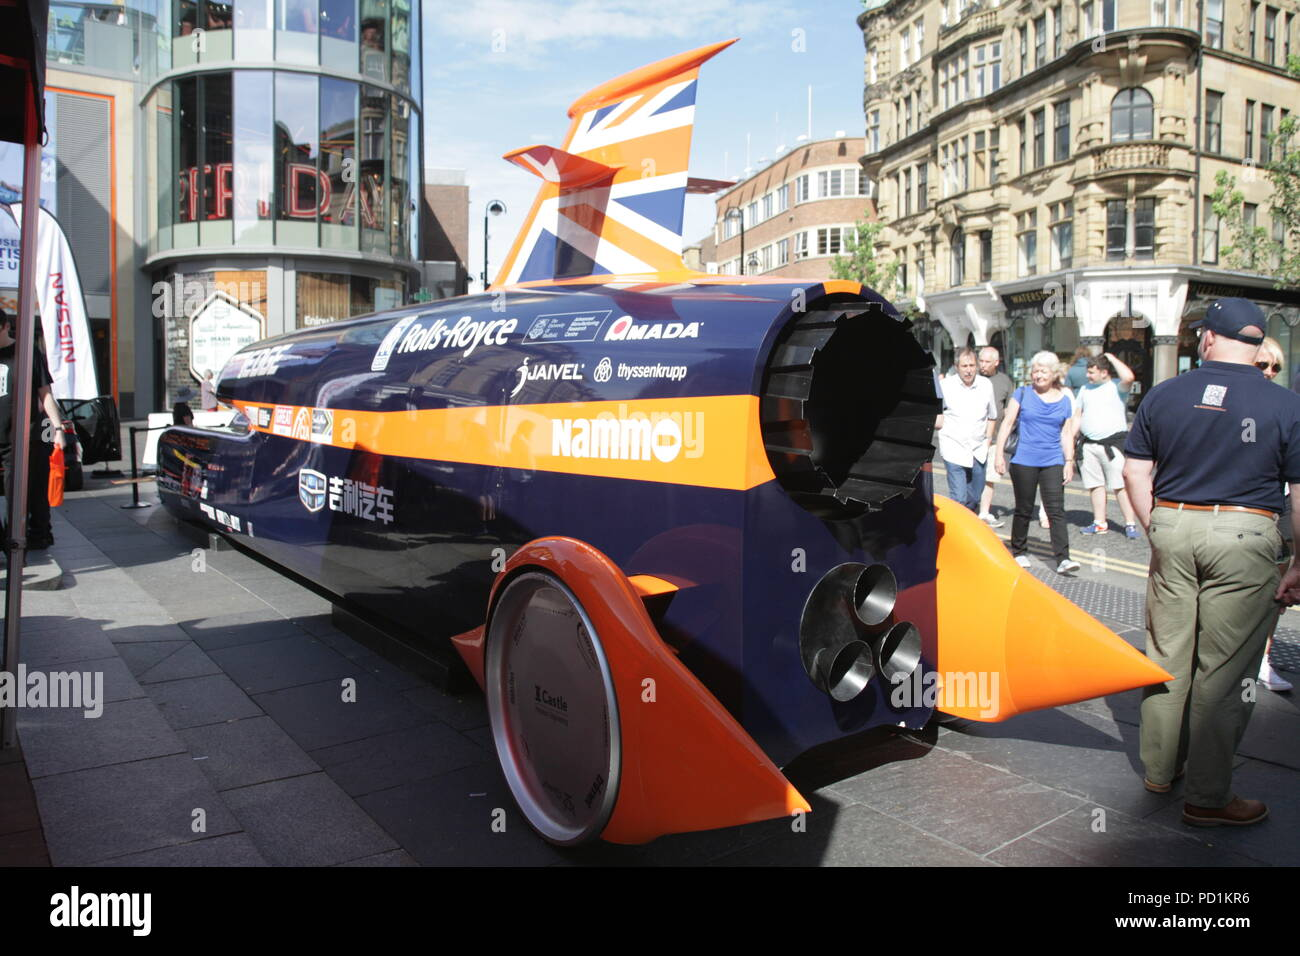 bloodhound ssc supersonic car. newcastle upon tyne, uk. 4th august